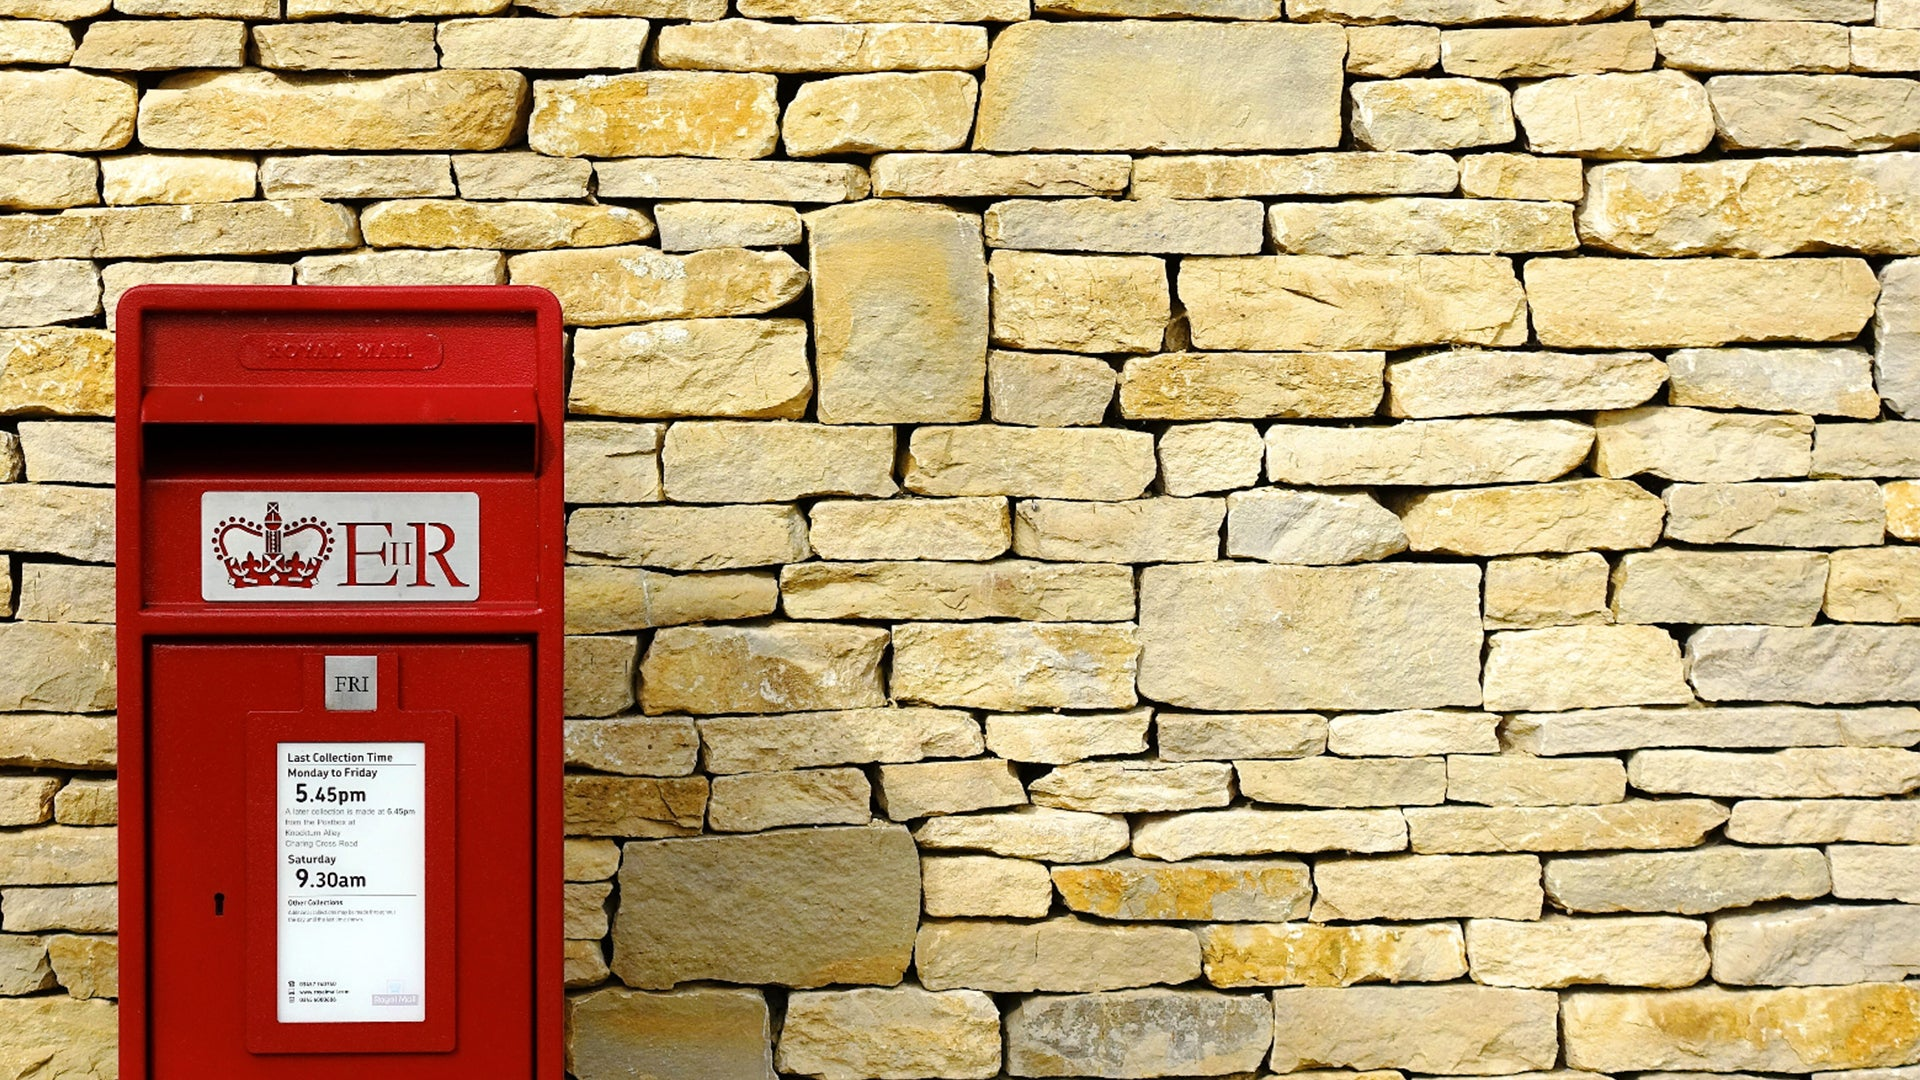 A picture of a sandstone coloured wall and a bright red postbox in front of it